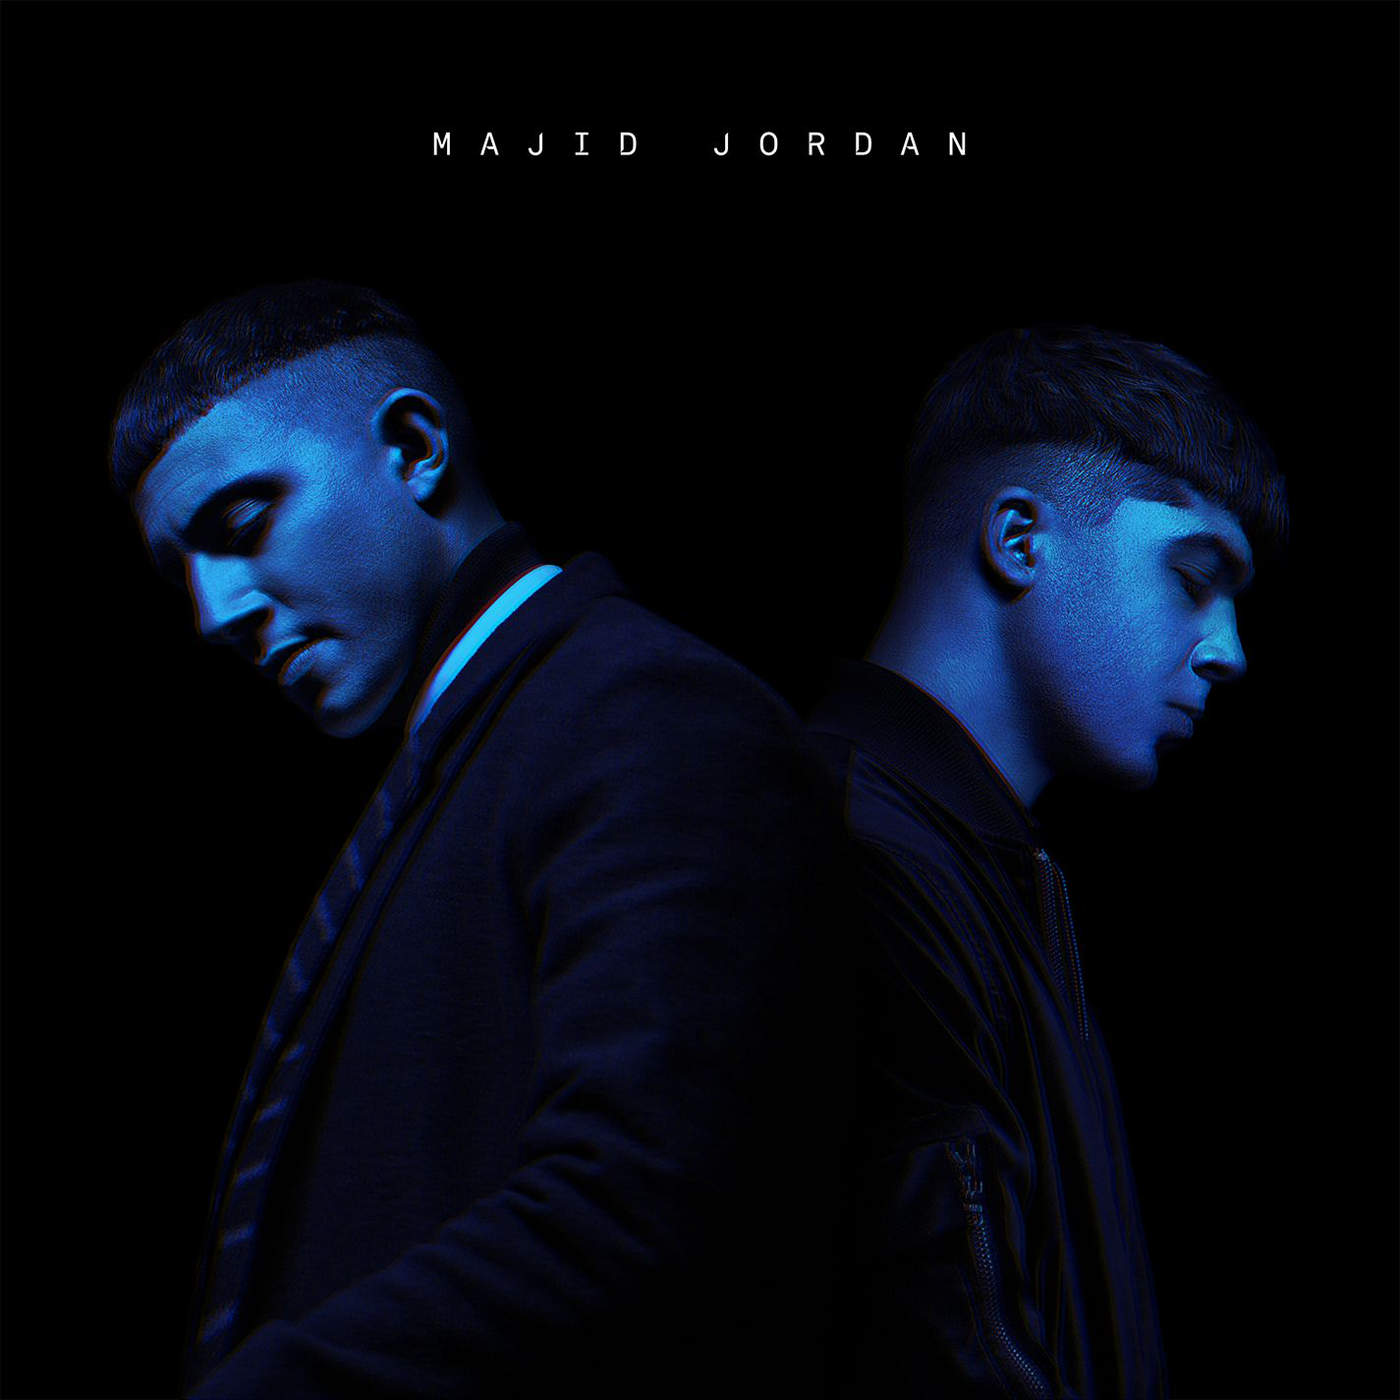 01086-majid-jordan-king-city